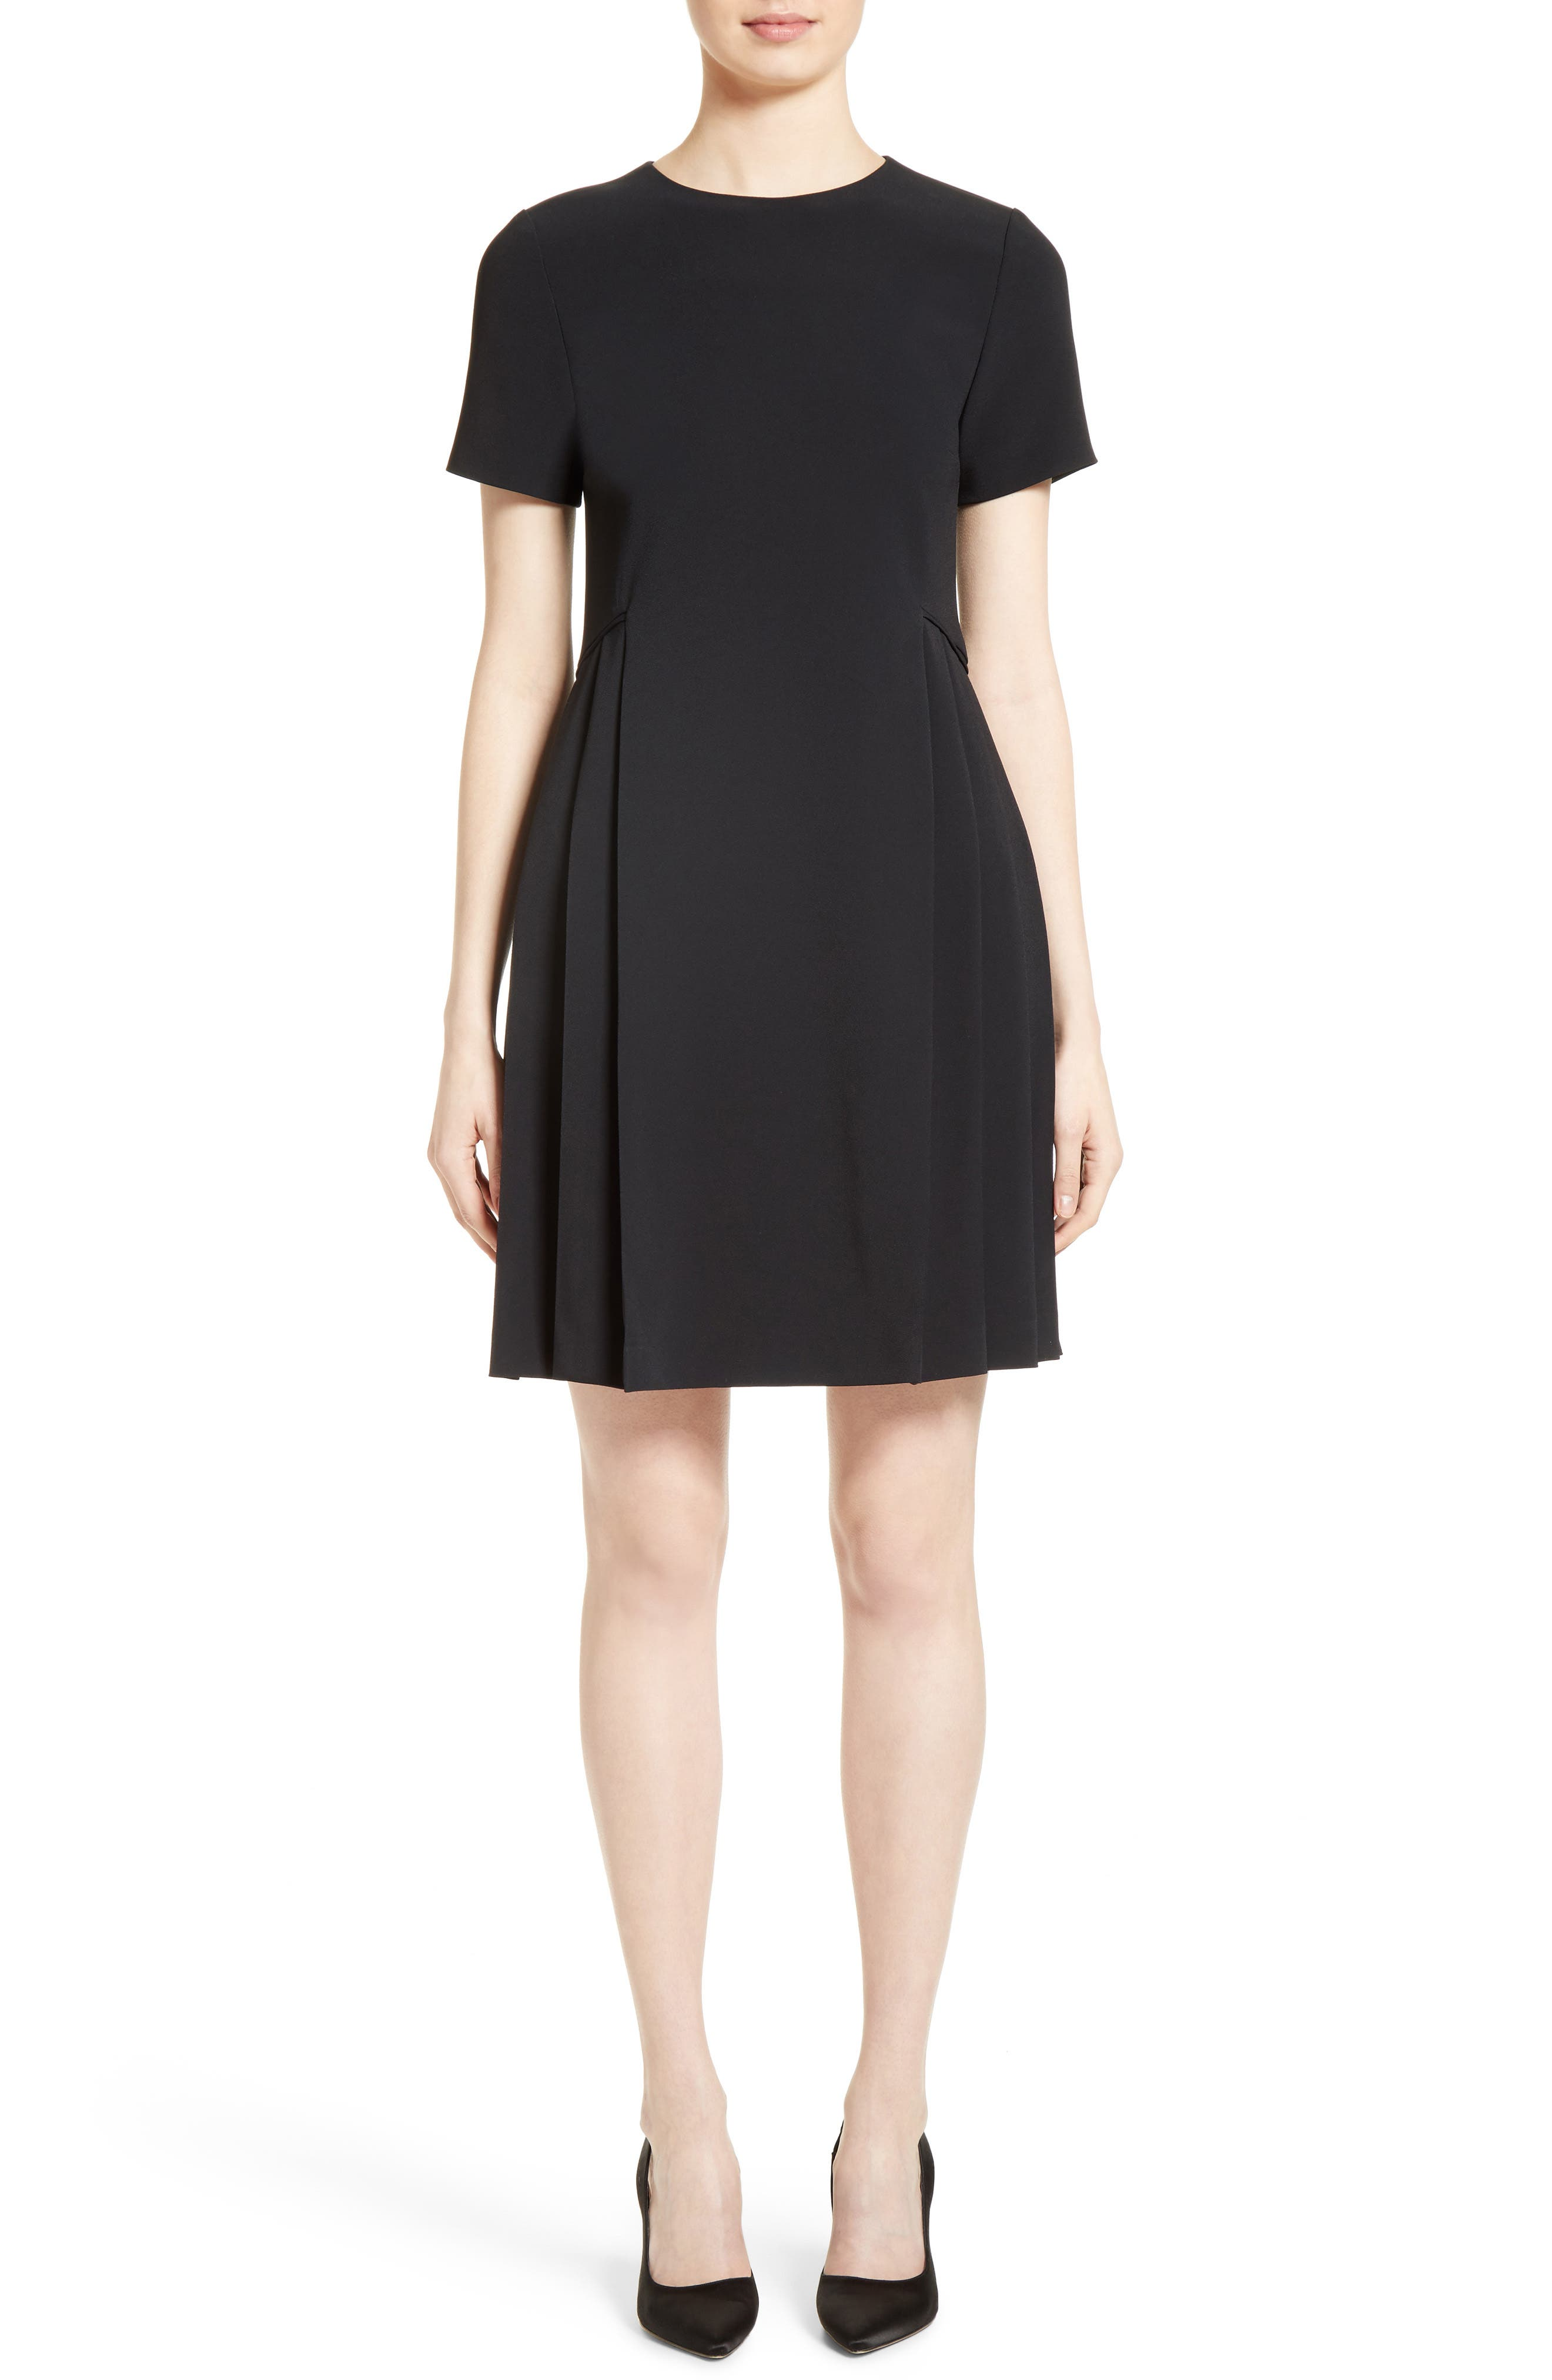 Alternate Image 1 Selected - Adam Lippes Pleated Fit & Flare Minidress